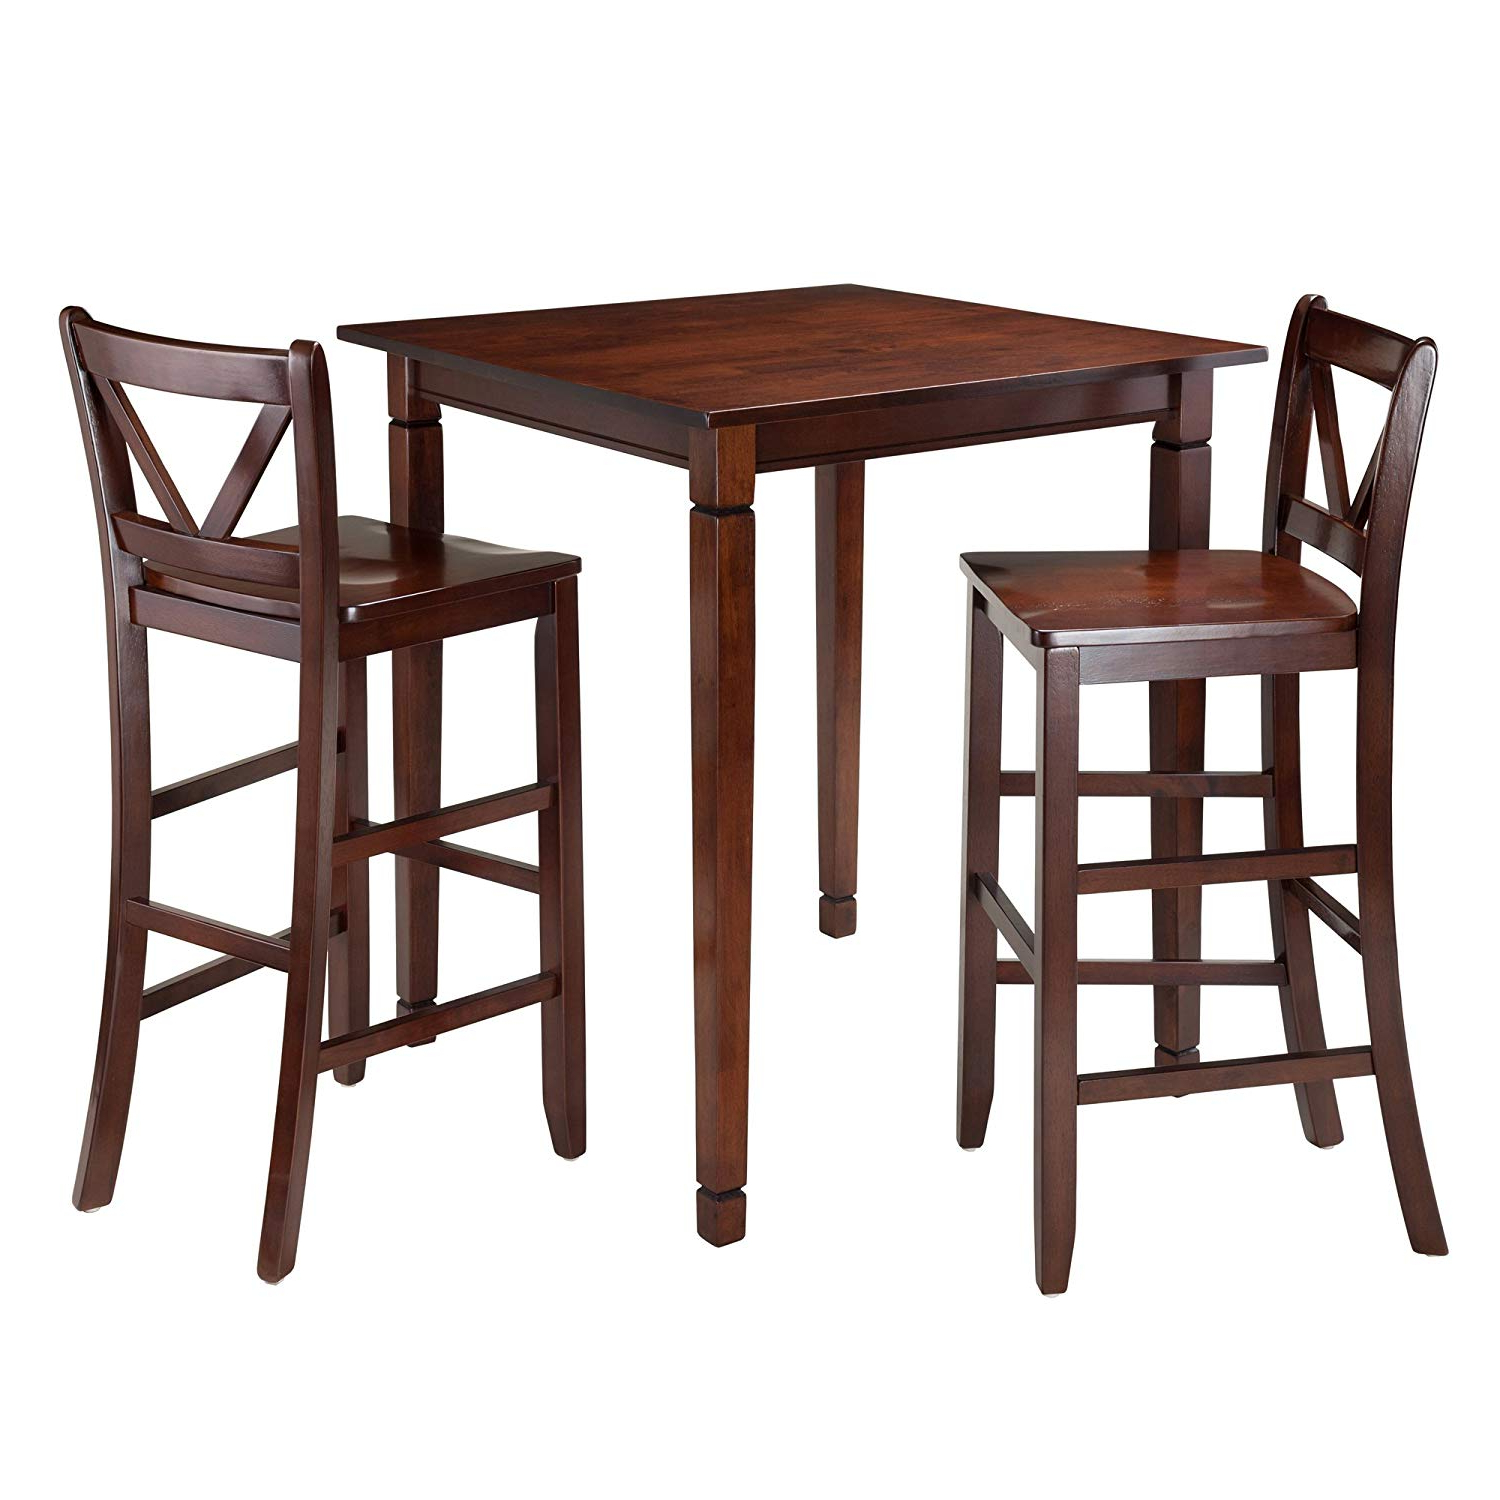 Winsome 3 Piece Kingsgate Dining Table With 2 Bar V Back Chairs, Brown Intended For Well Known Winsome 3 Piece Counter Height Dining Sets (View 15 of 20)